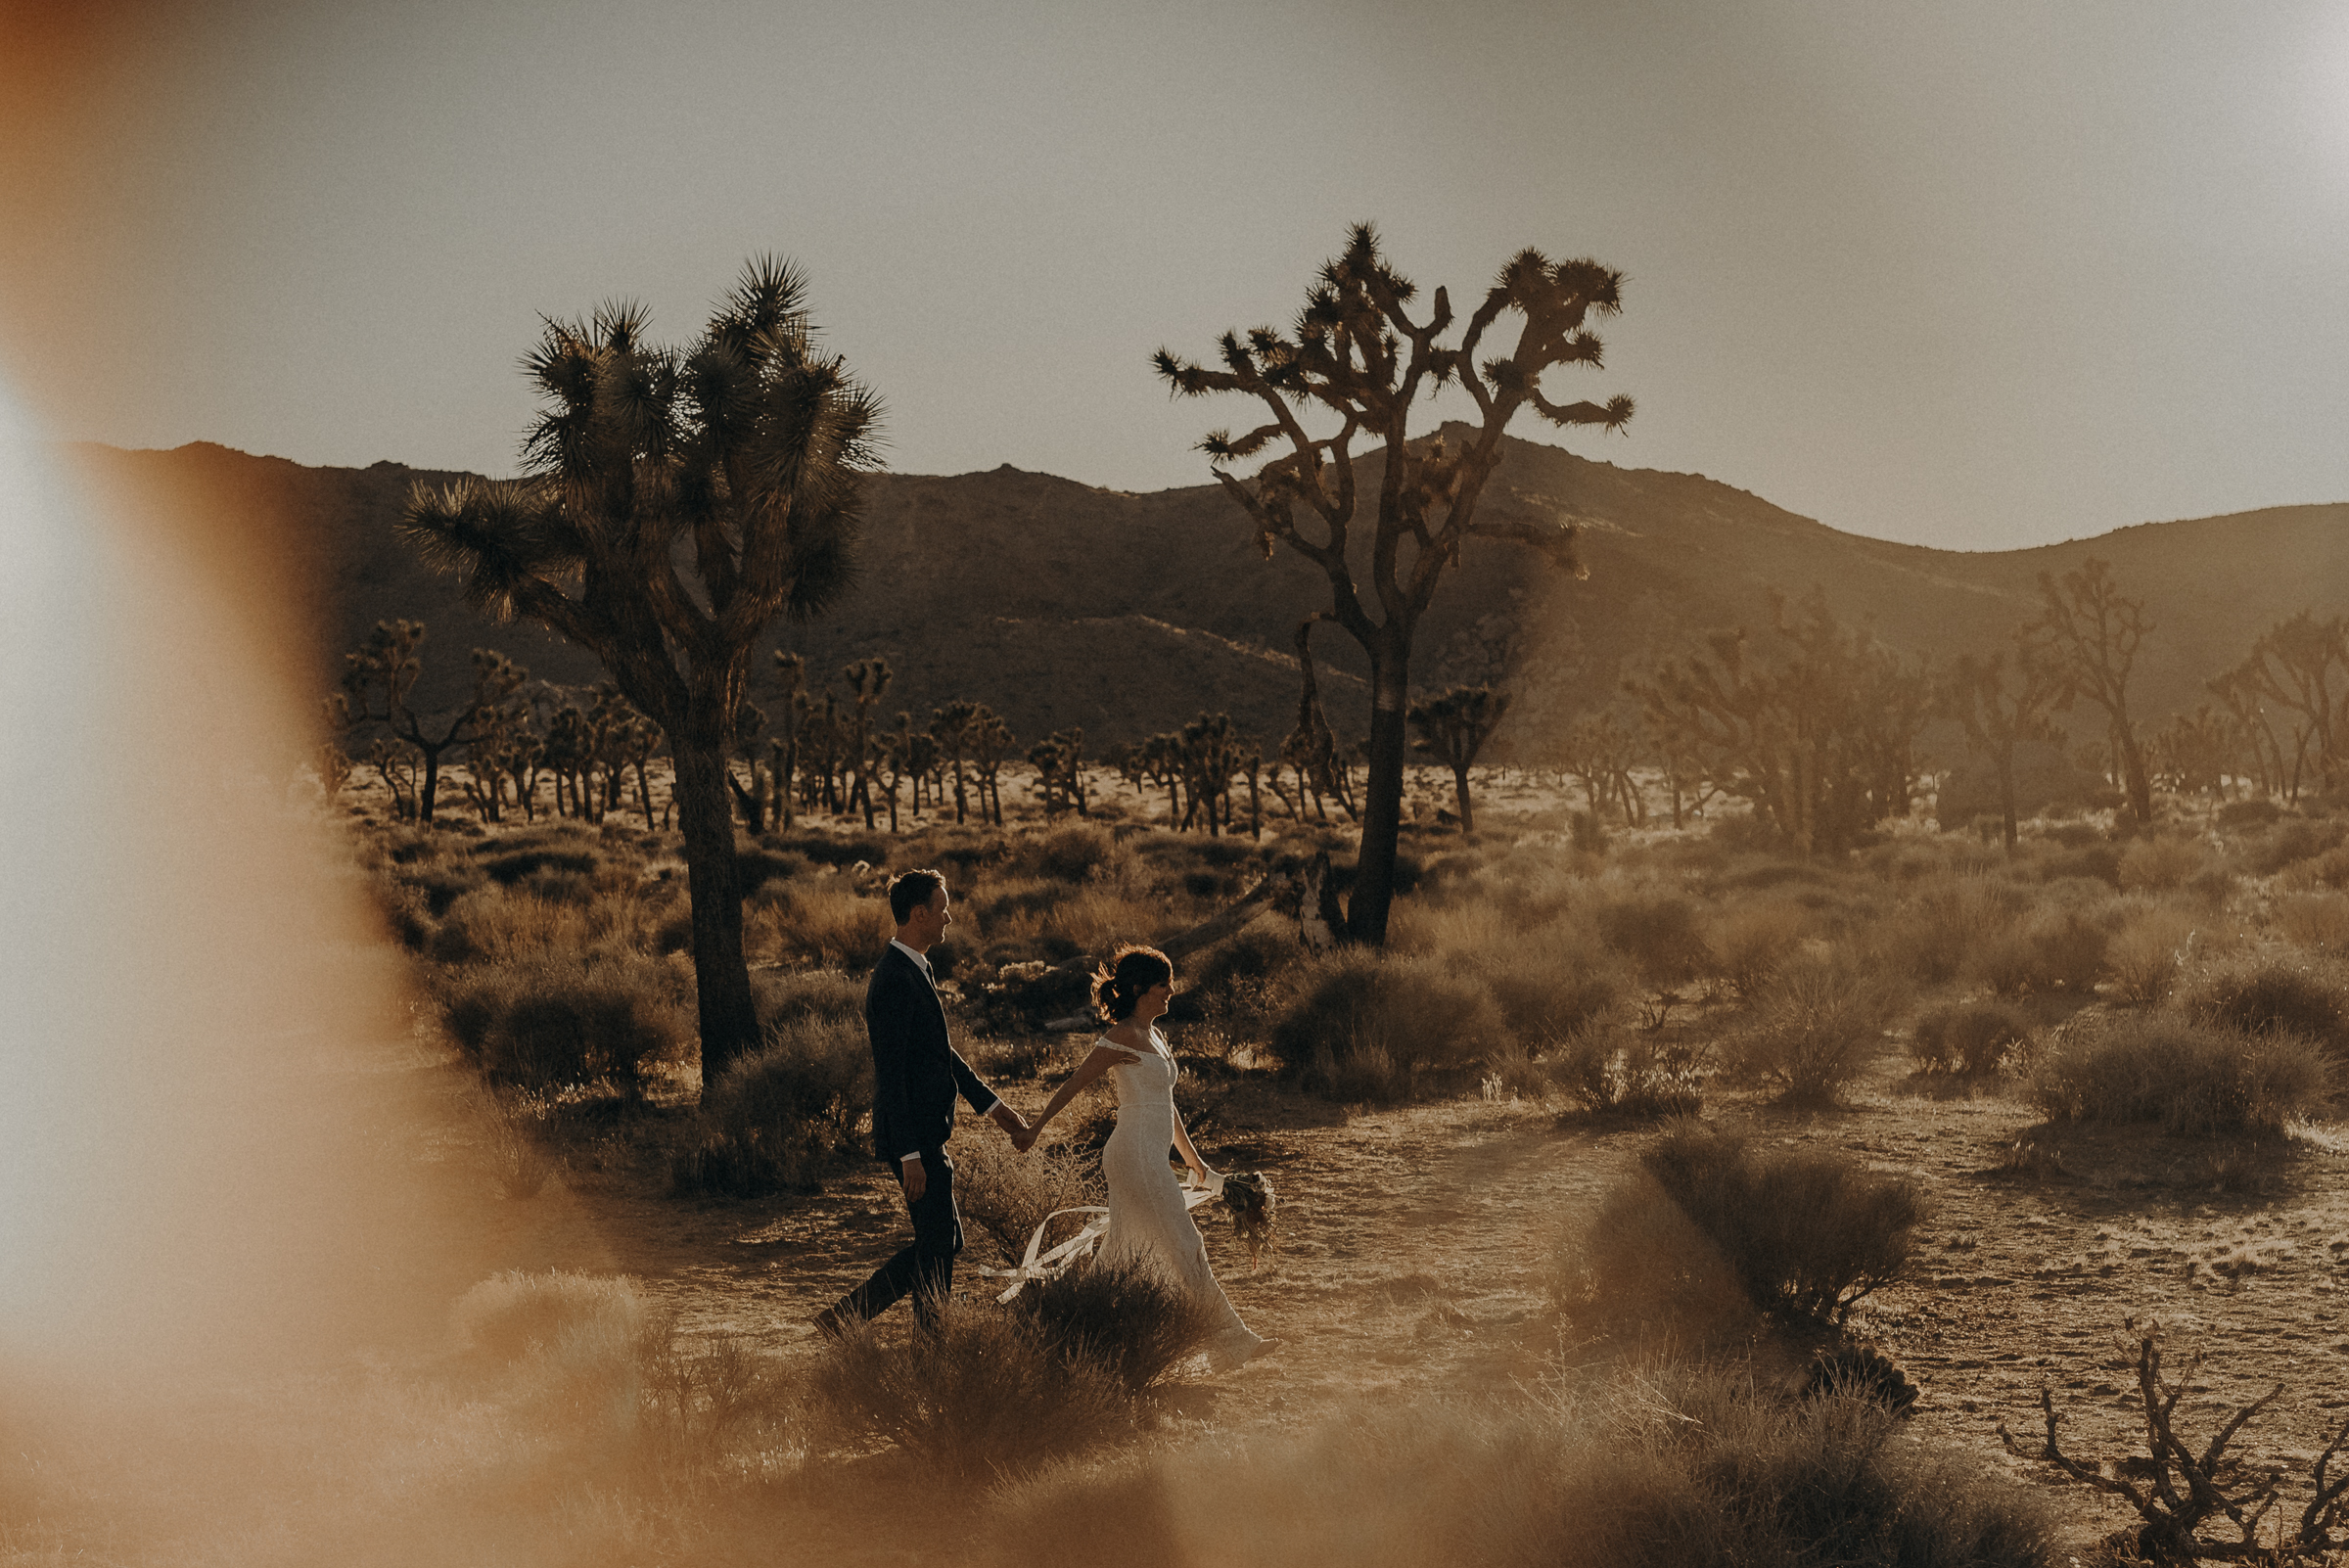 Joshua Tree Elopement - Los Angeles Wedding Photographers - IsaiahAndTaylor.com-084.jpg